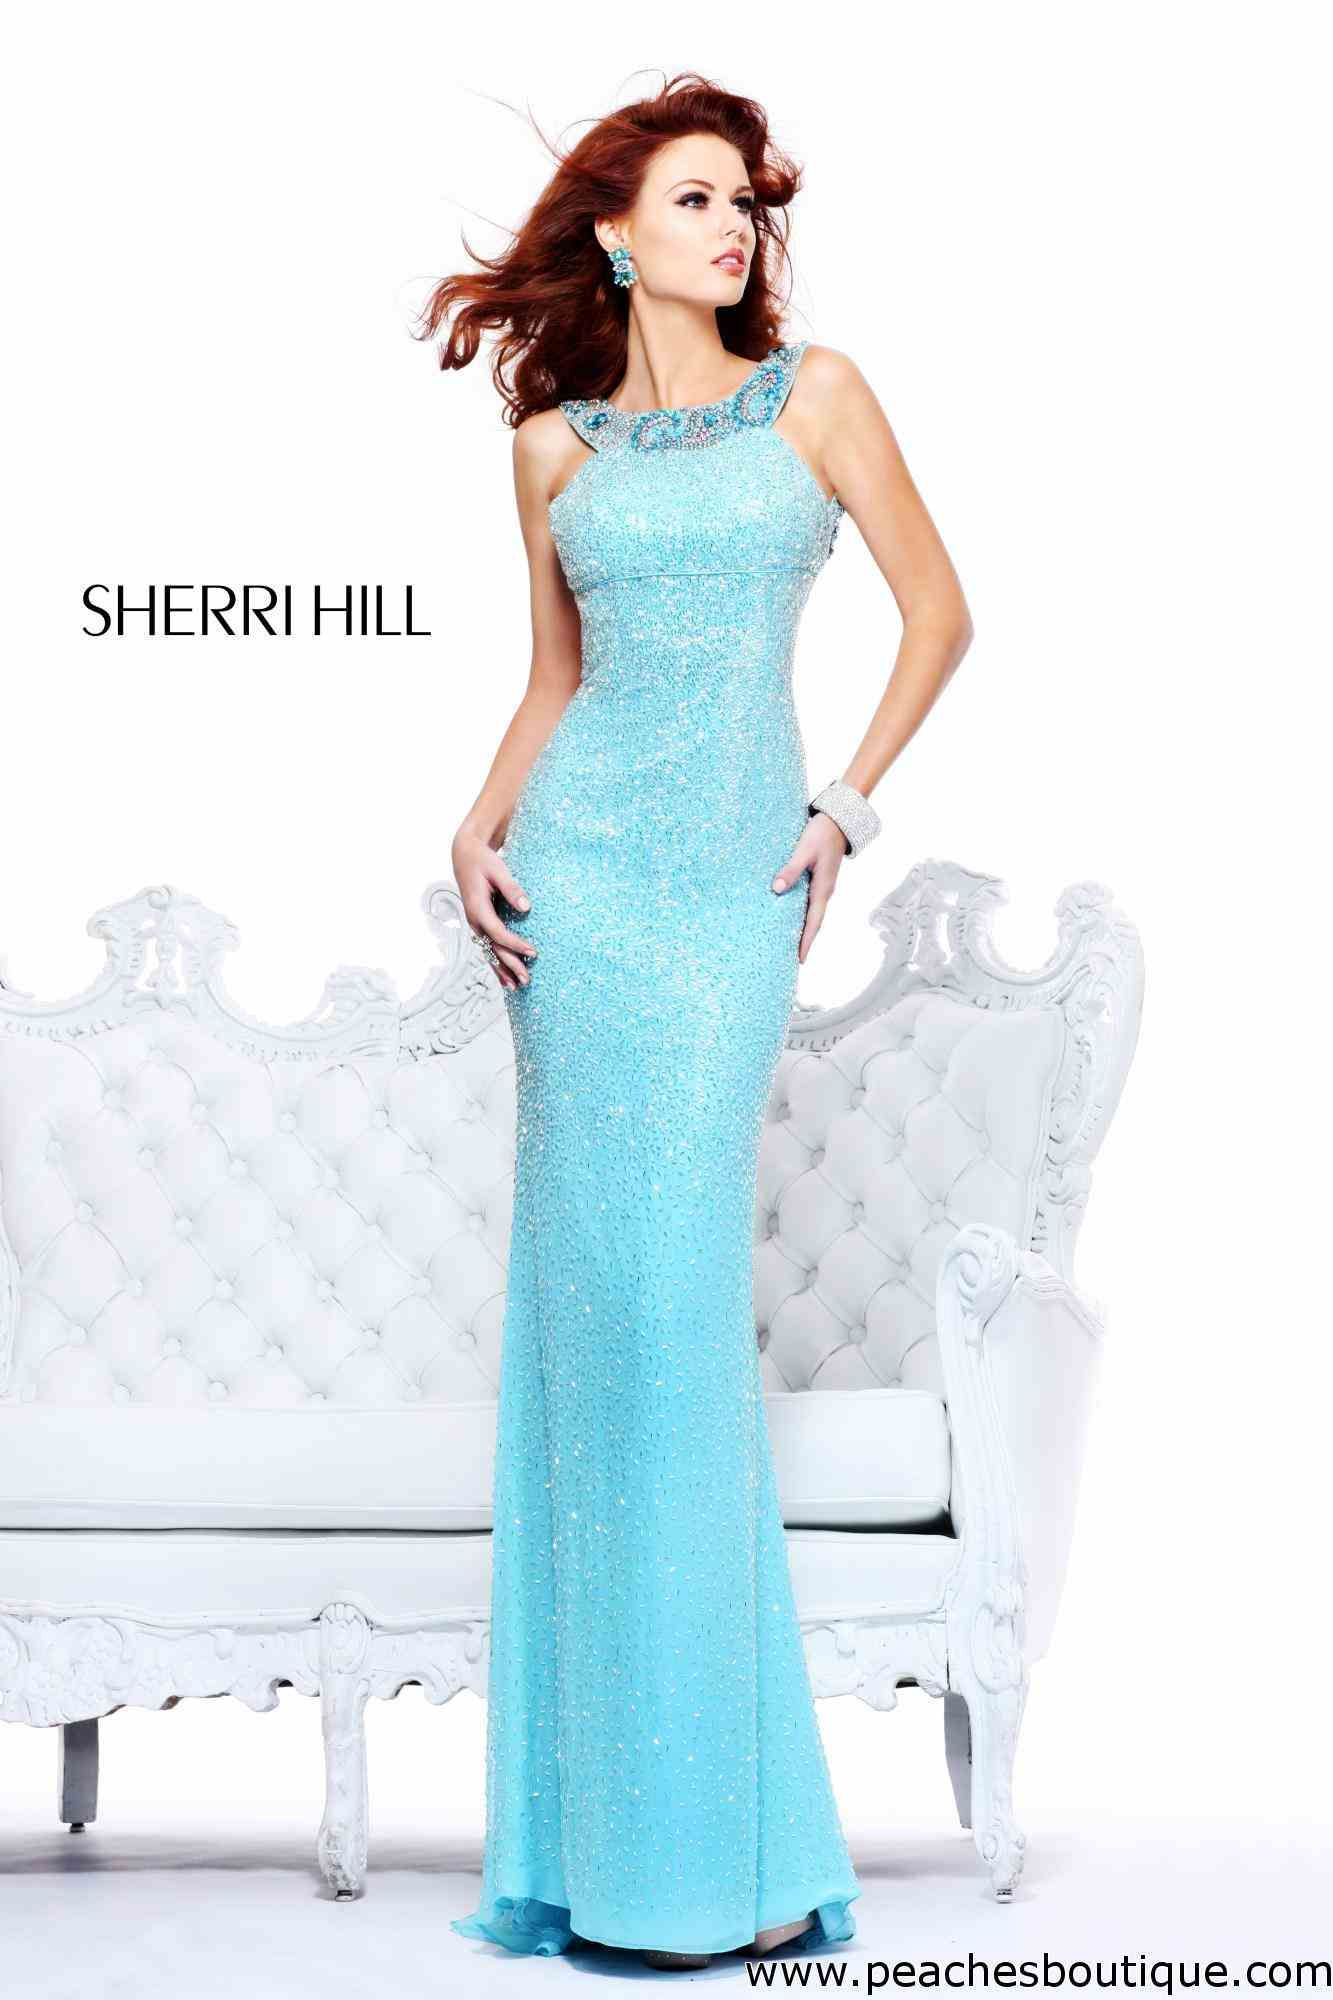 Sherri hill prom dress designer diversity pinterest